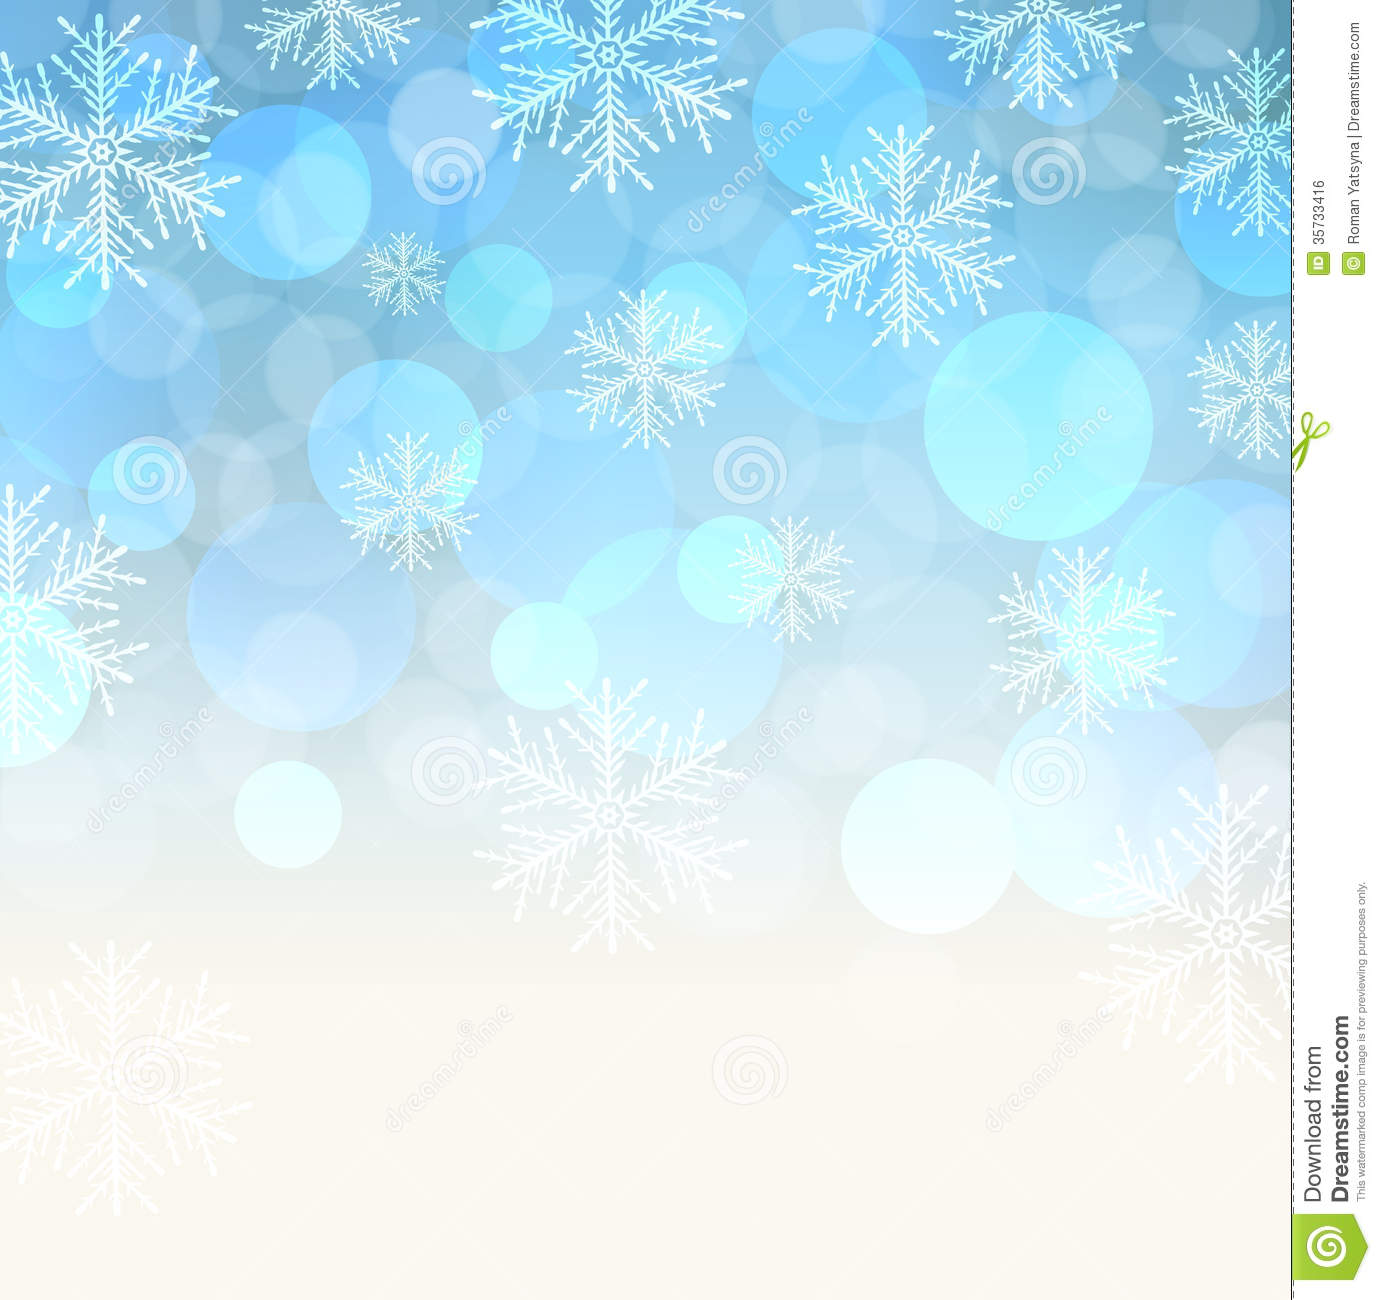 Blue Snowy Background. Royalty Free Stock Image - Image: 35733416